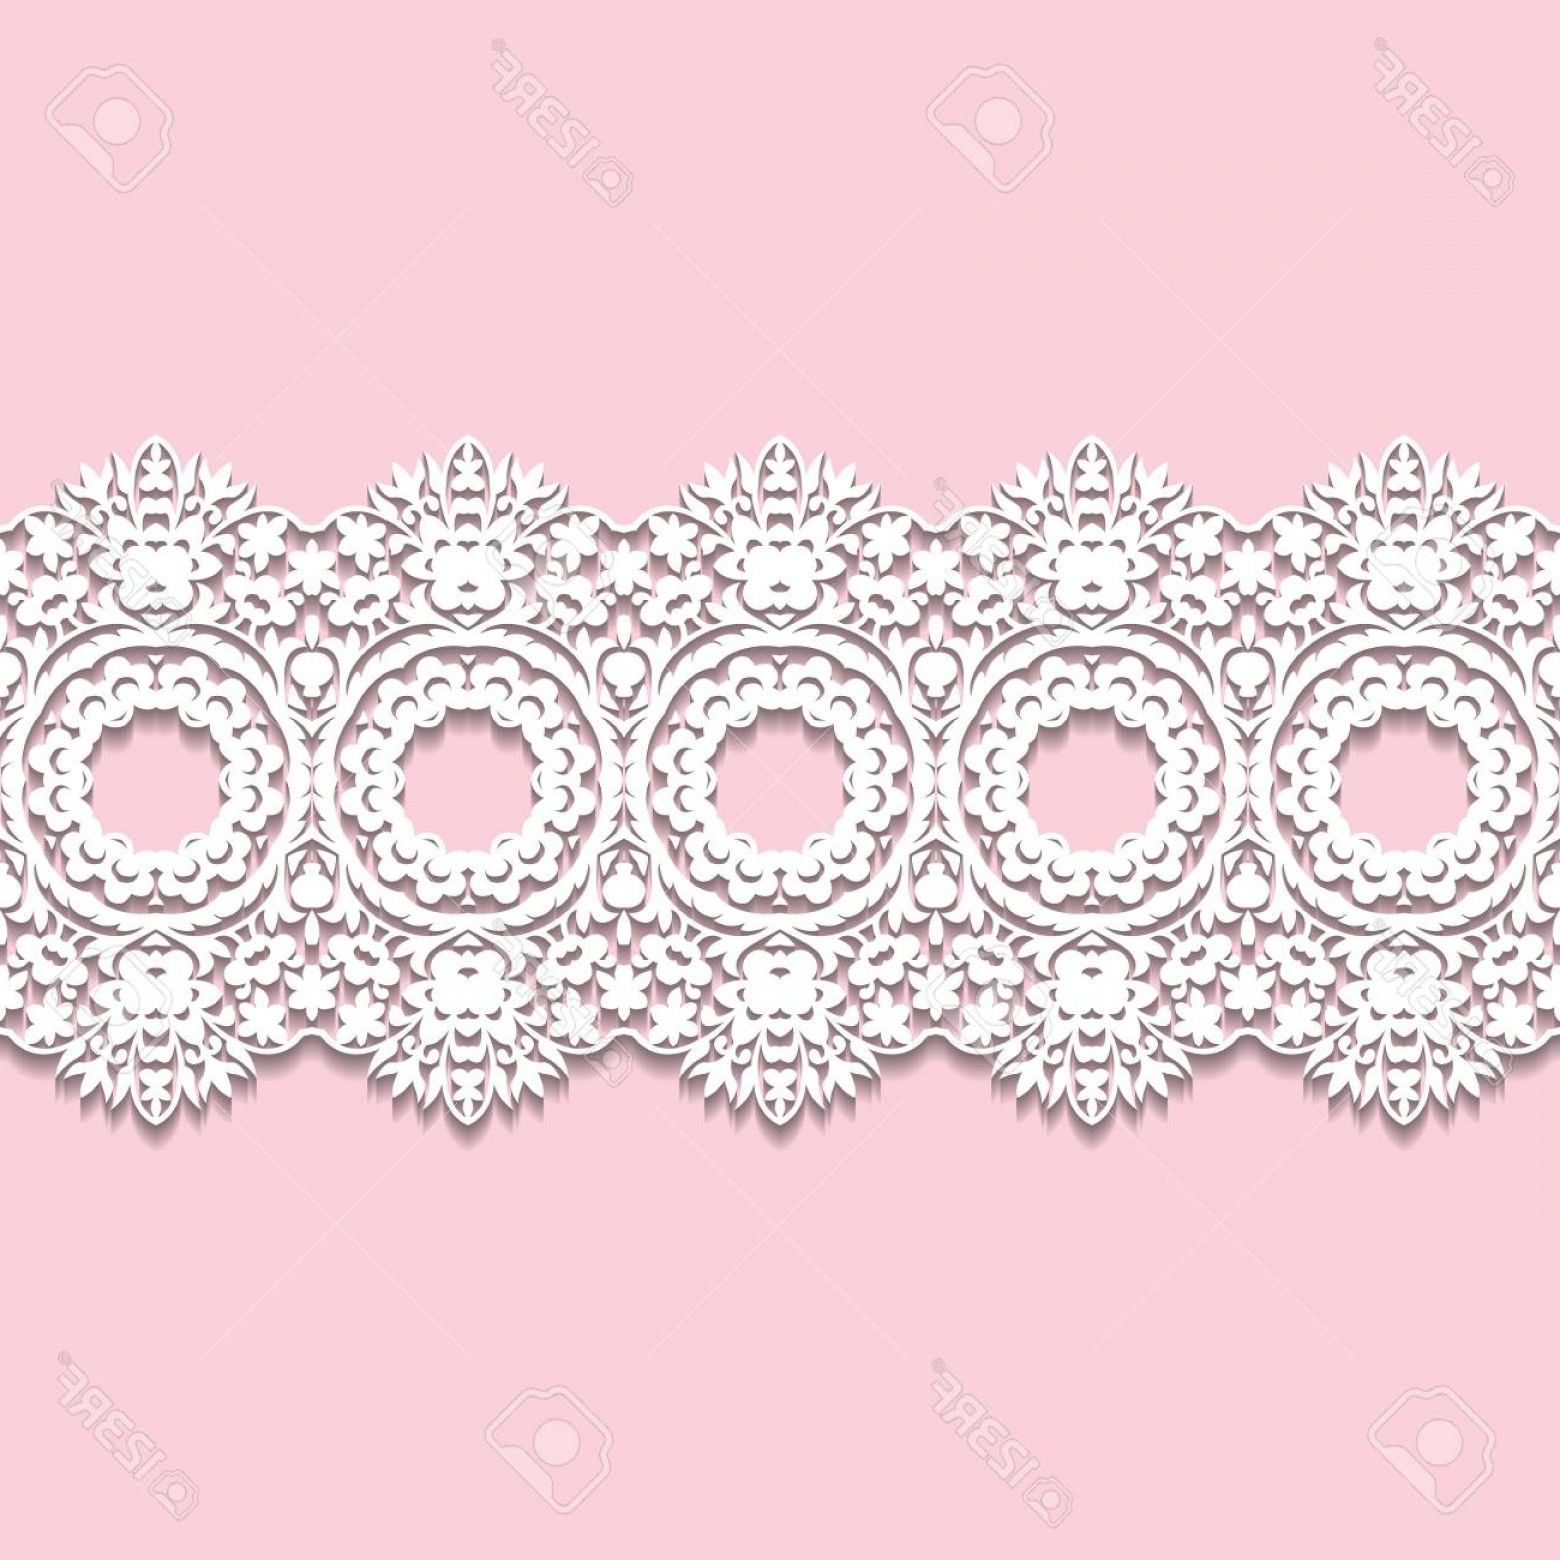 1560x1560 Photostock Vector White Lace Border With Shadow Ornamental Paper